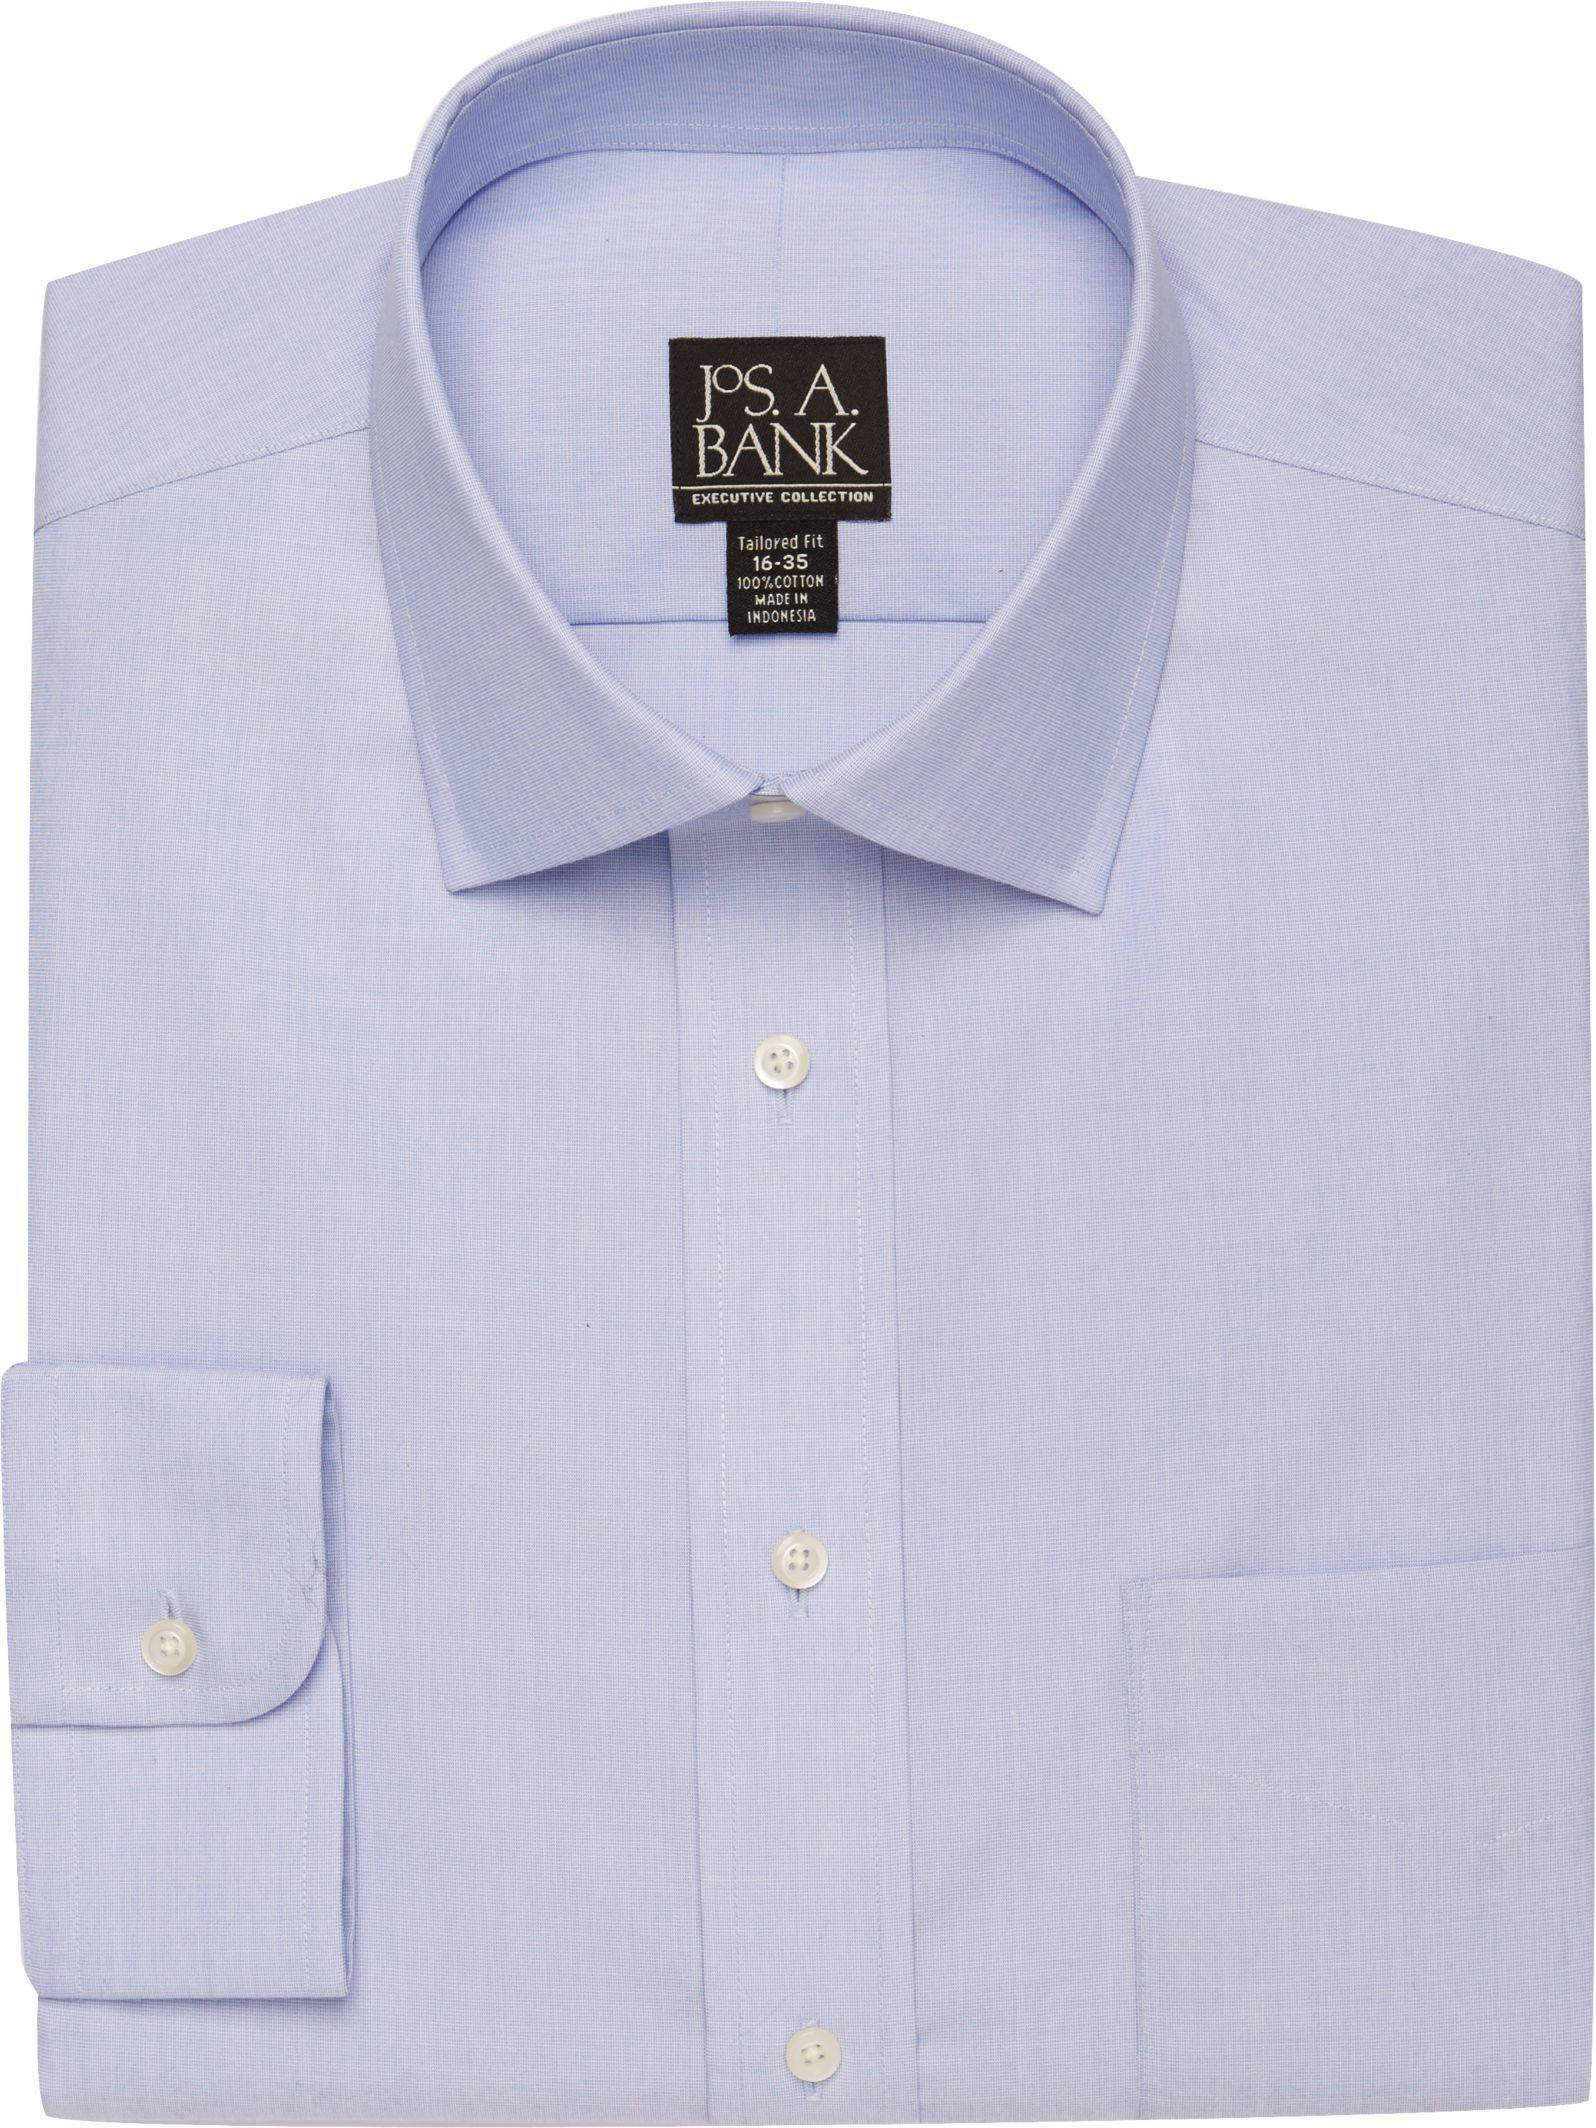 Lyst jos a bank executive collection spread collar for Dress shirt collar fit